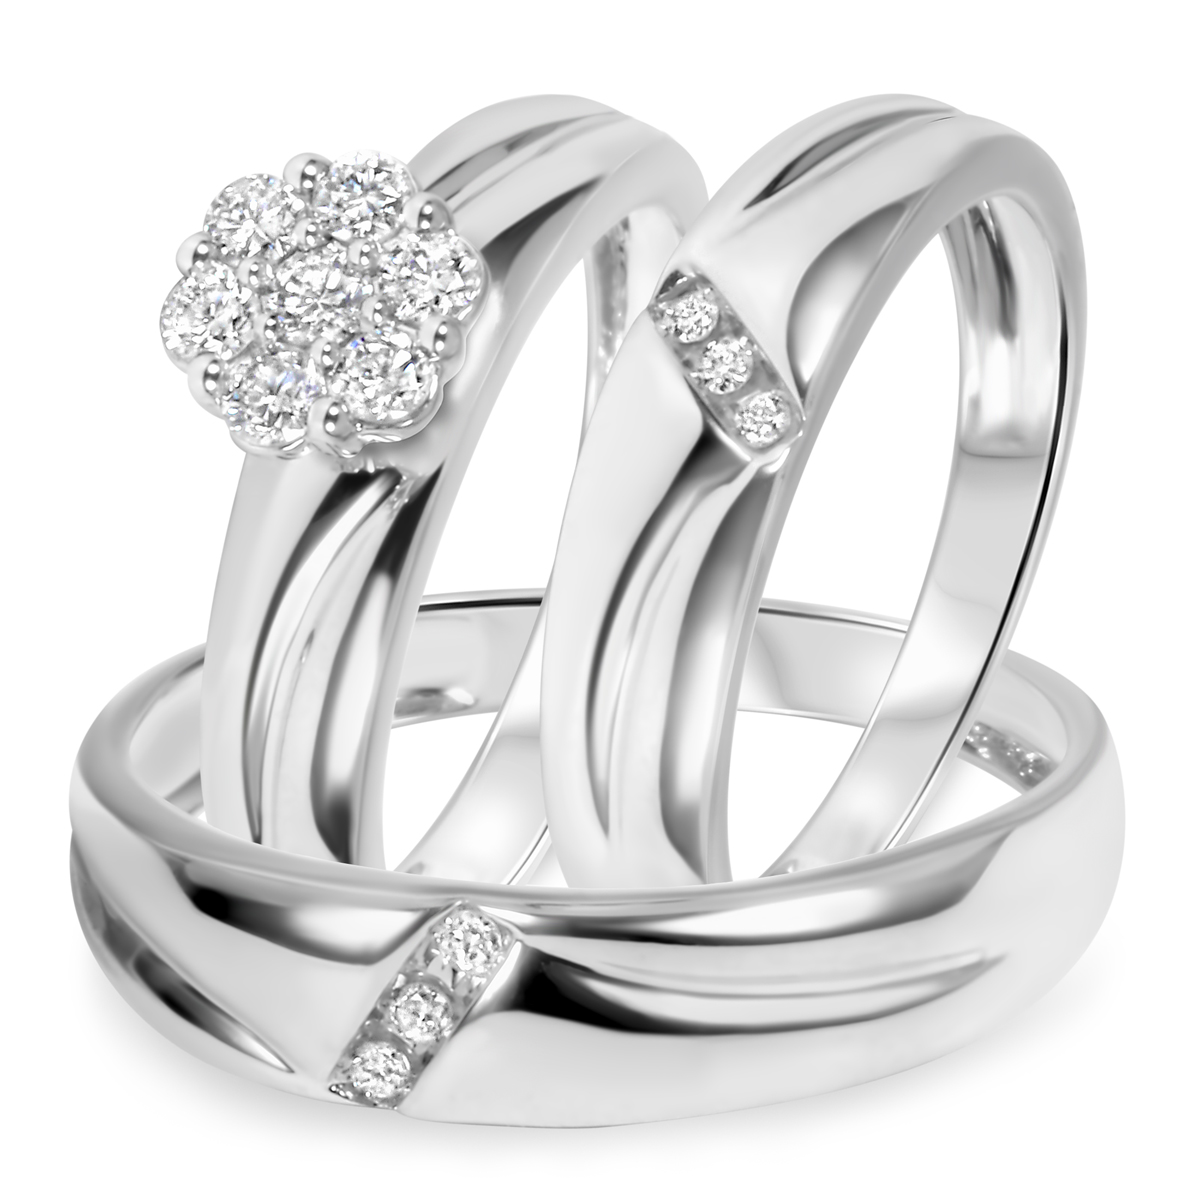 1/2 CT. T.W. Round Cut Diamond His and Hers Engagement Ring, Ladies Wedding